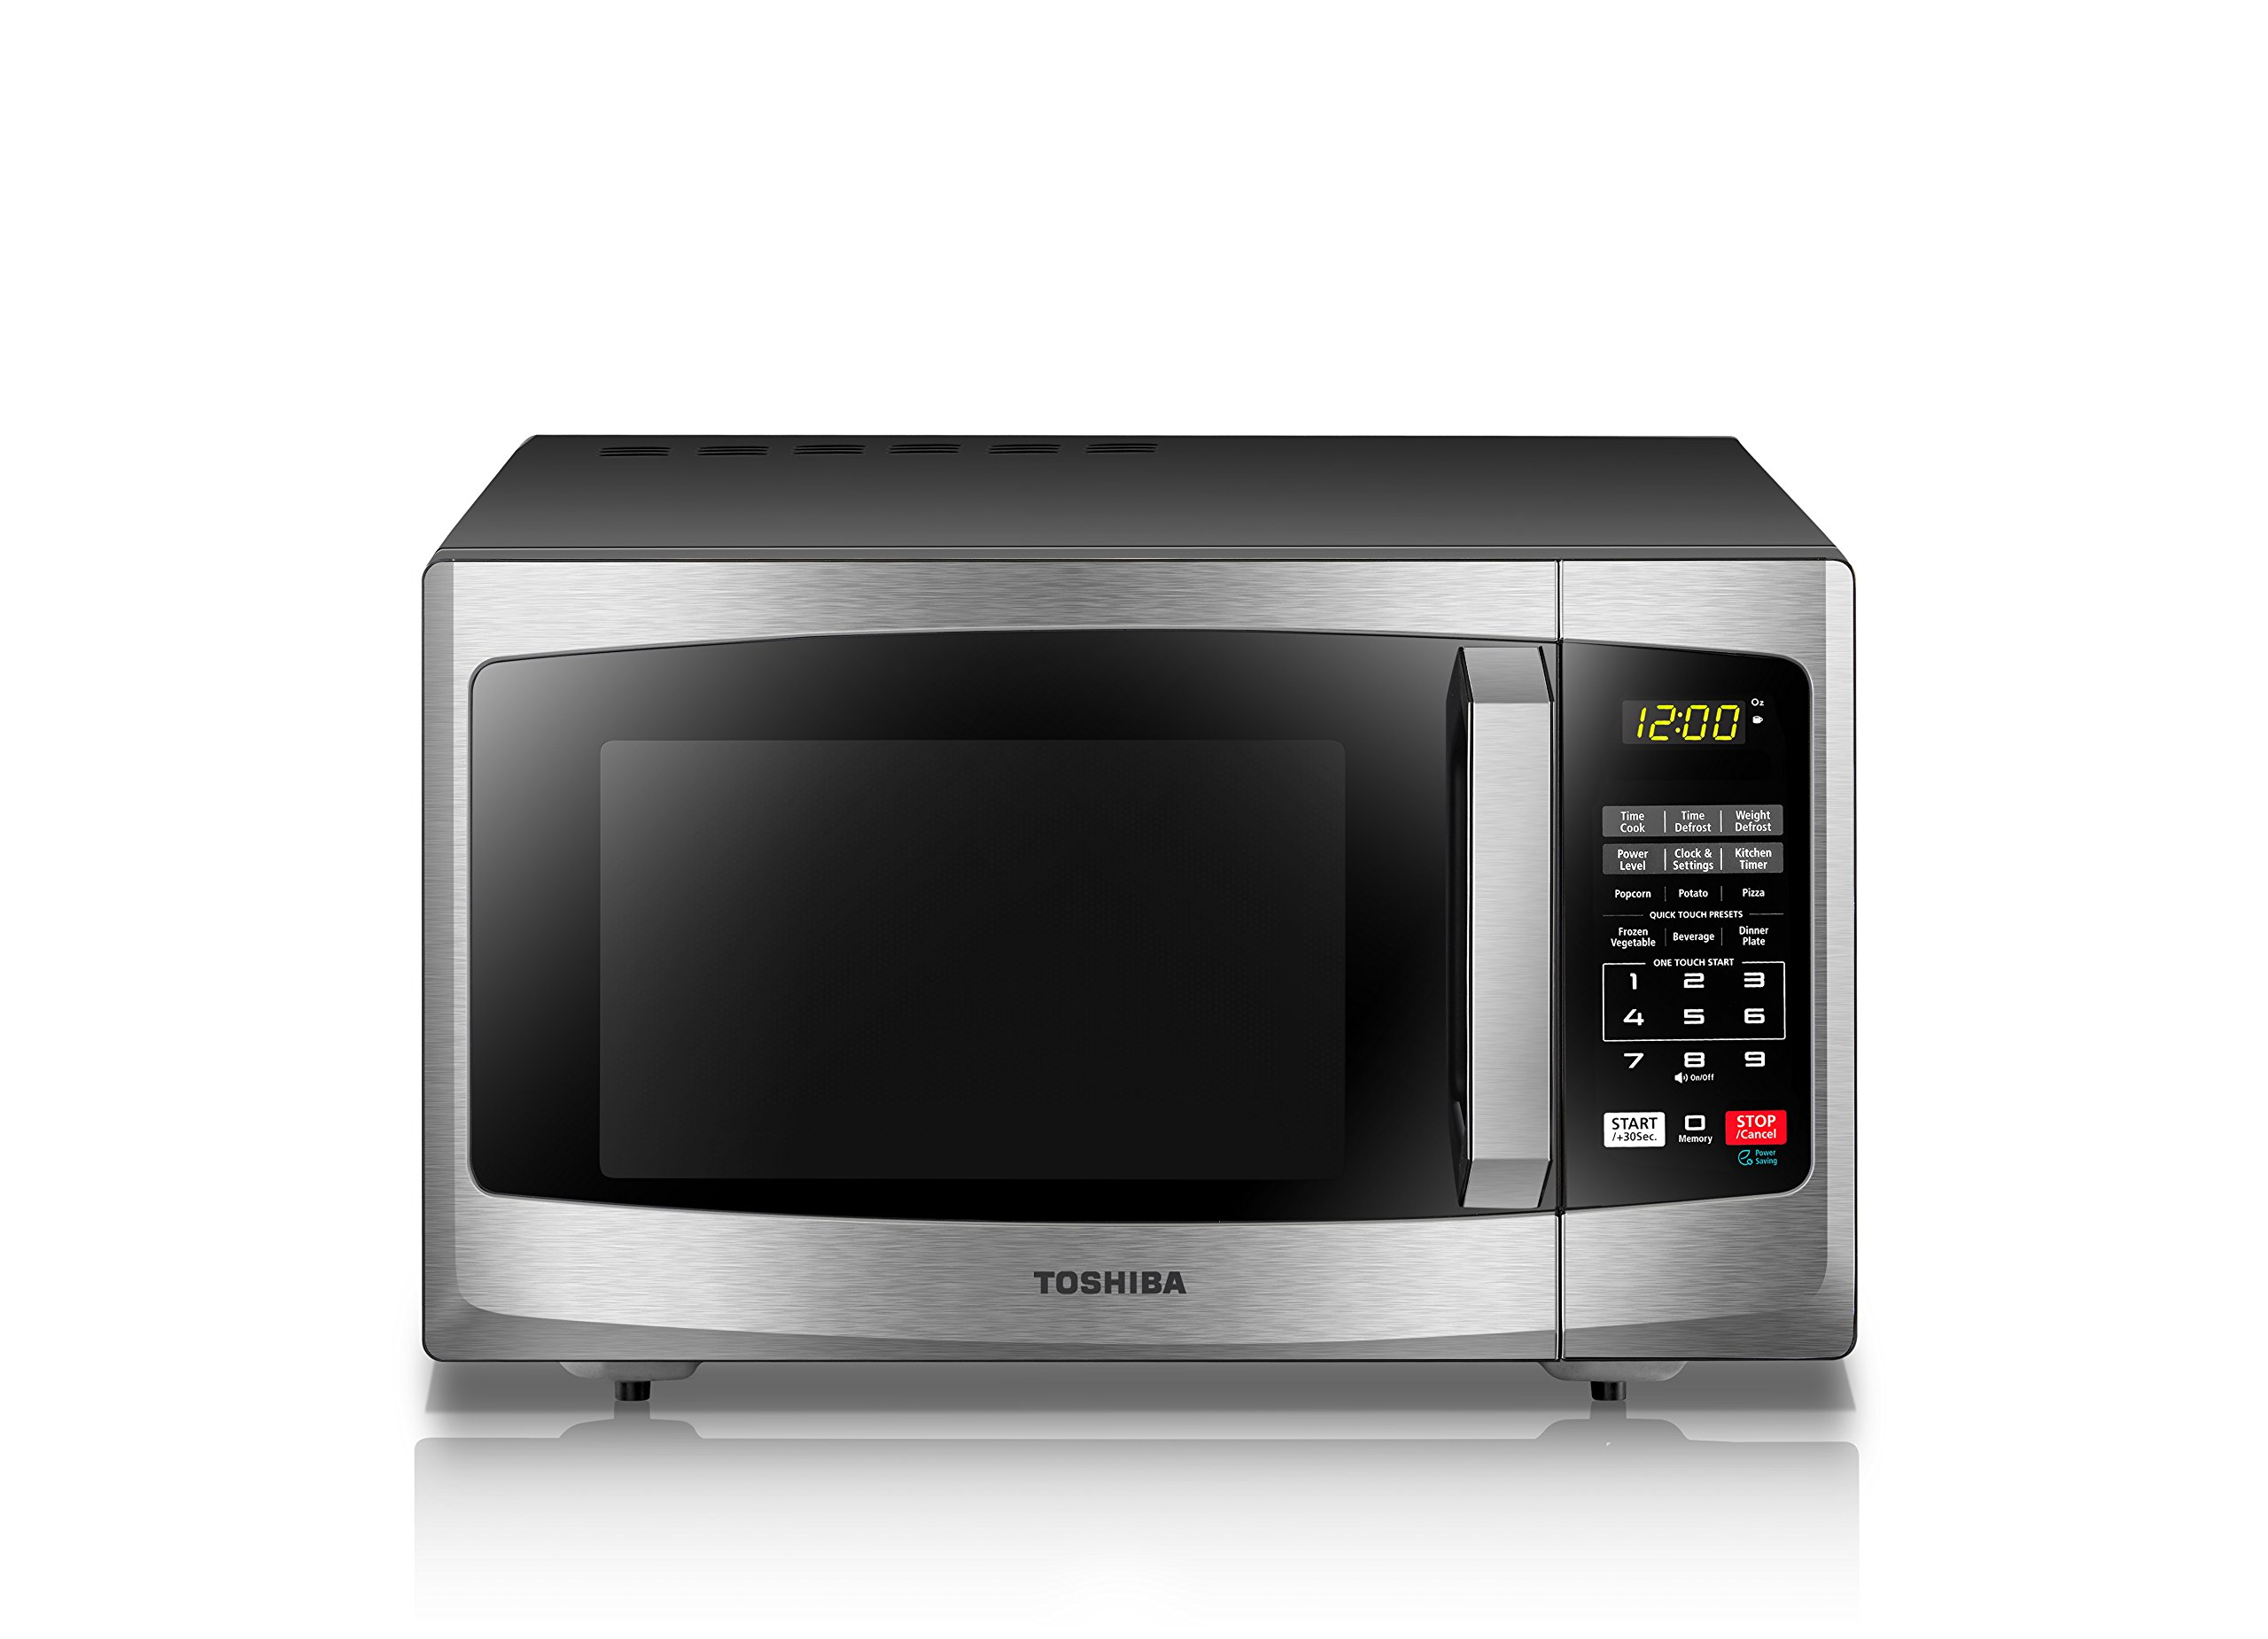 Toshiba EM925A5A-SS Microwave Oven with Sound On/Off ECO Mode and LED Lighting 0.9 cu. ft. Stainless Steel by Toshiba (Image #2)